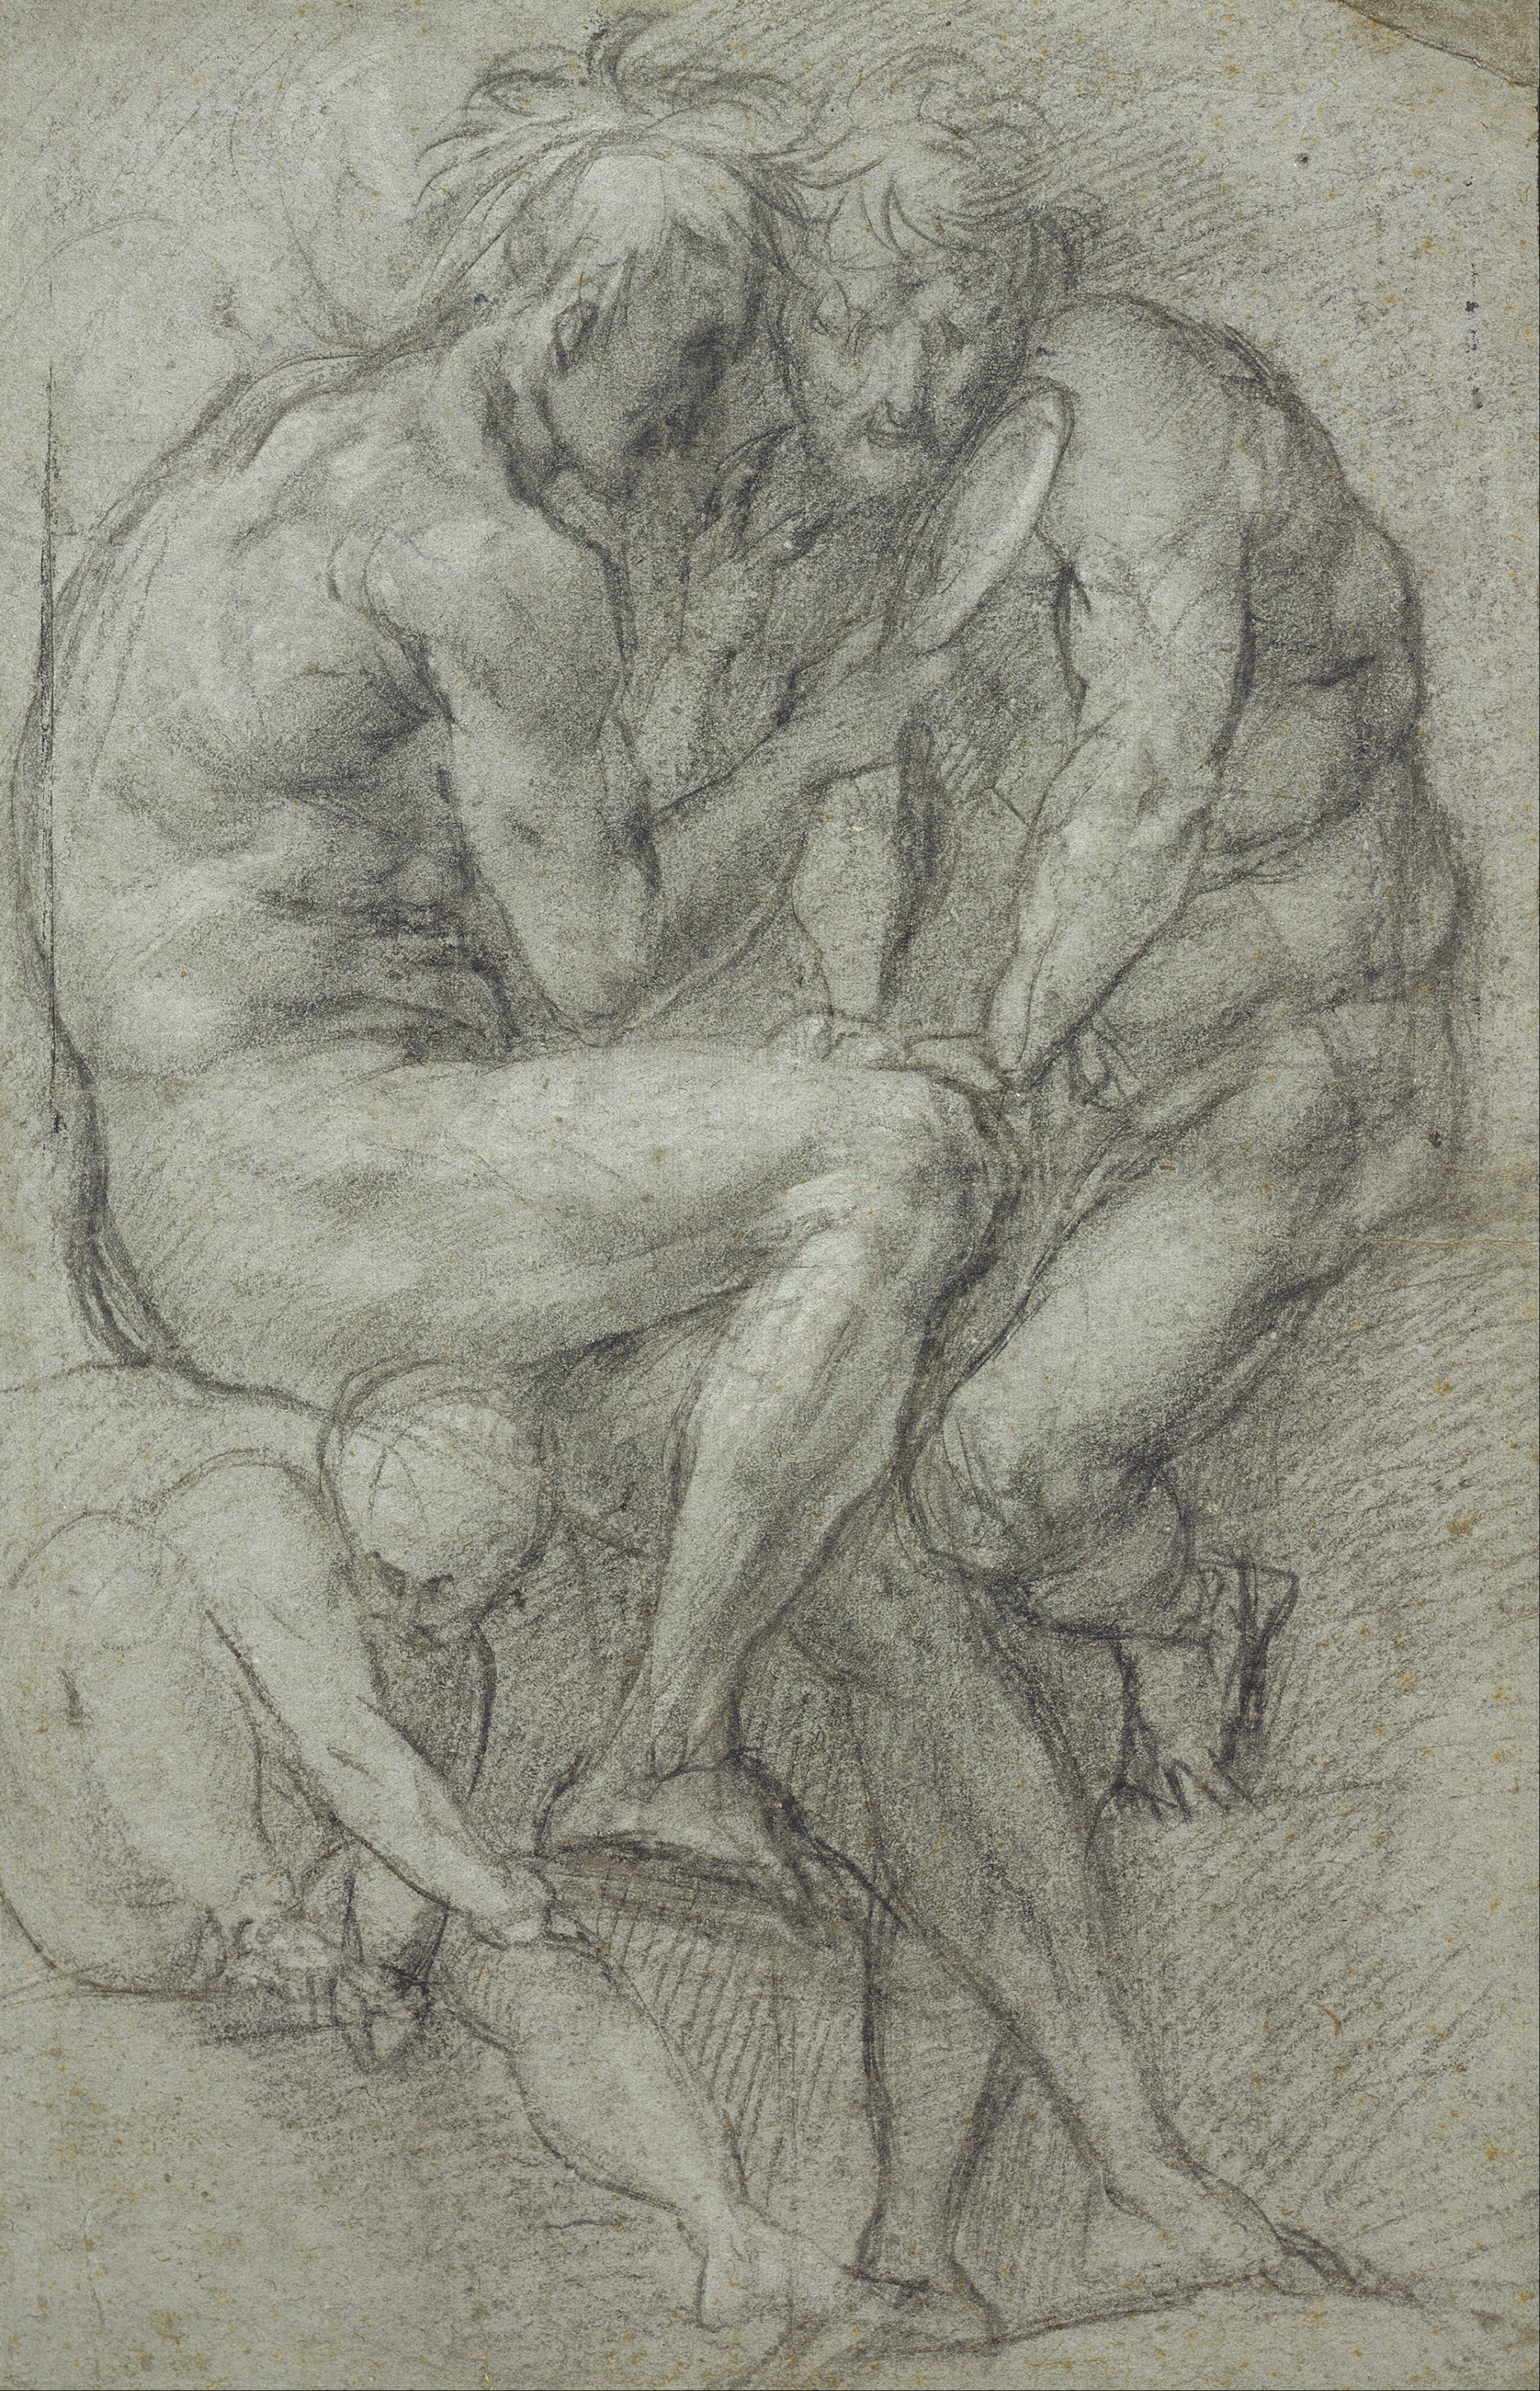 Pontormo_(Jacopo_Carucci)_-_Studies_of_nudes_(two_men,_seated,_looking_in_a_mirror,_and_a_seated_boy)_-_Google_Art_Project.jpg